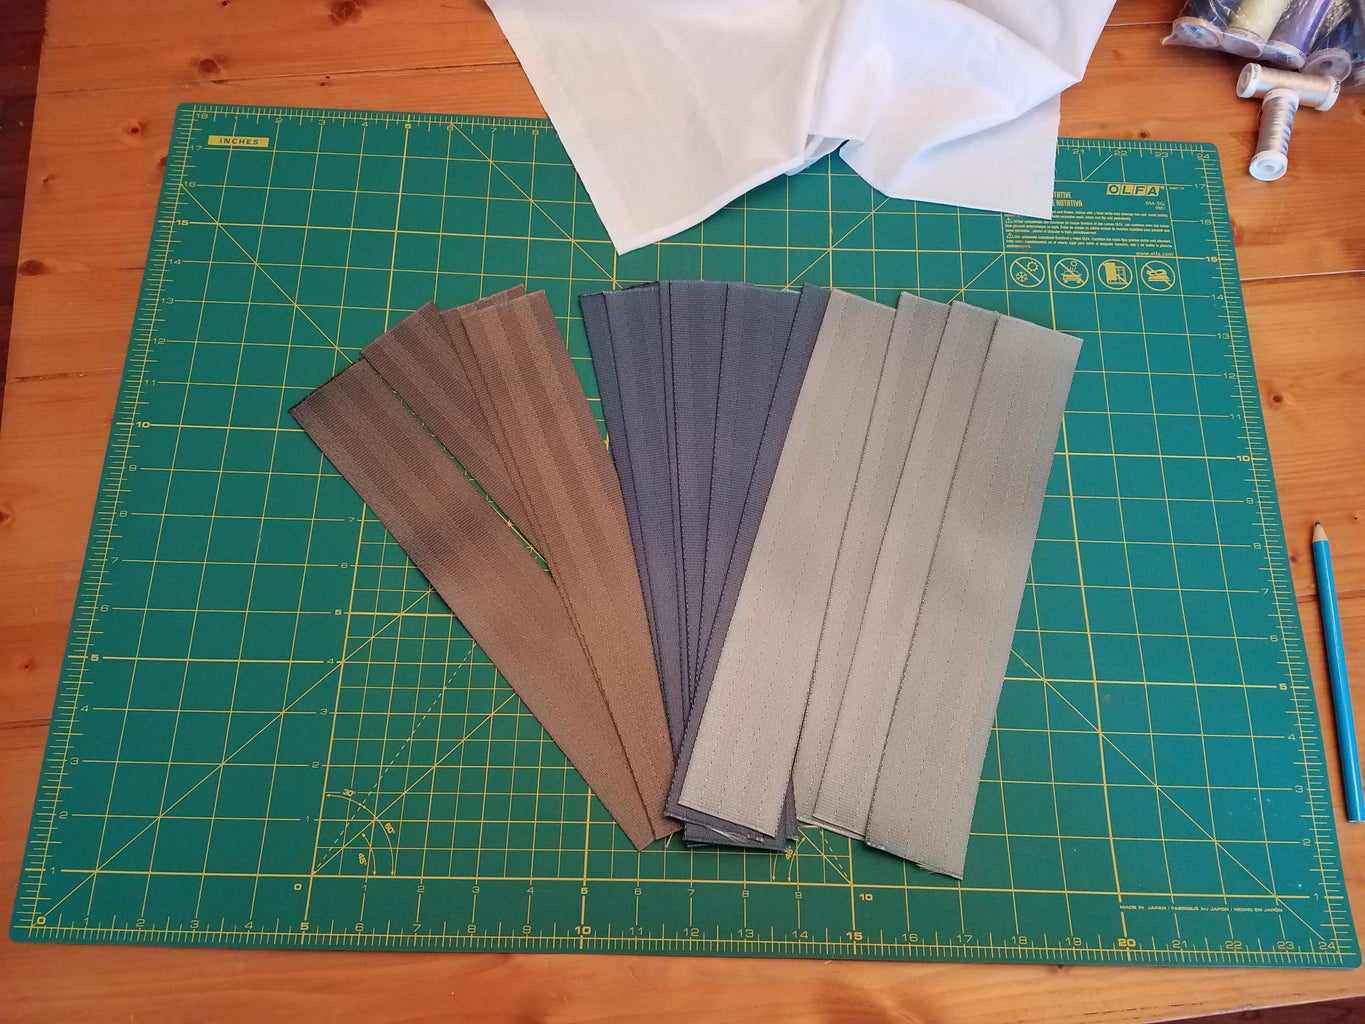 Cut Initial Seatbelt Material for Front and Back of Bag